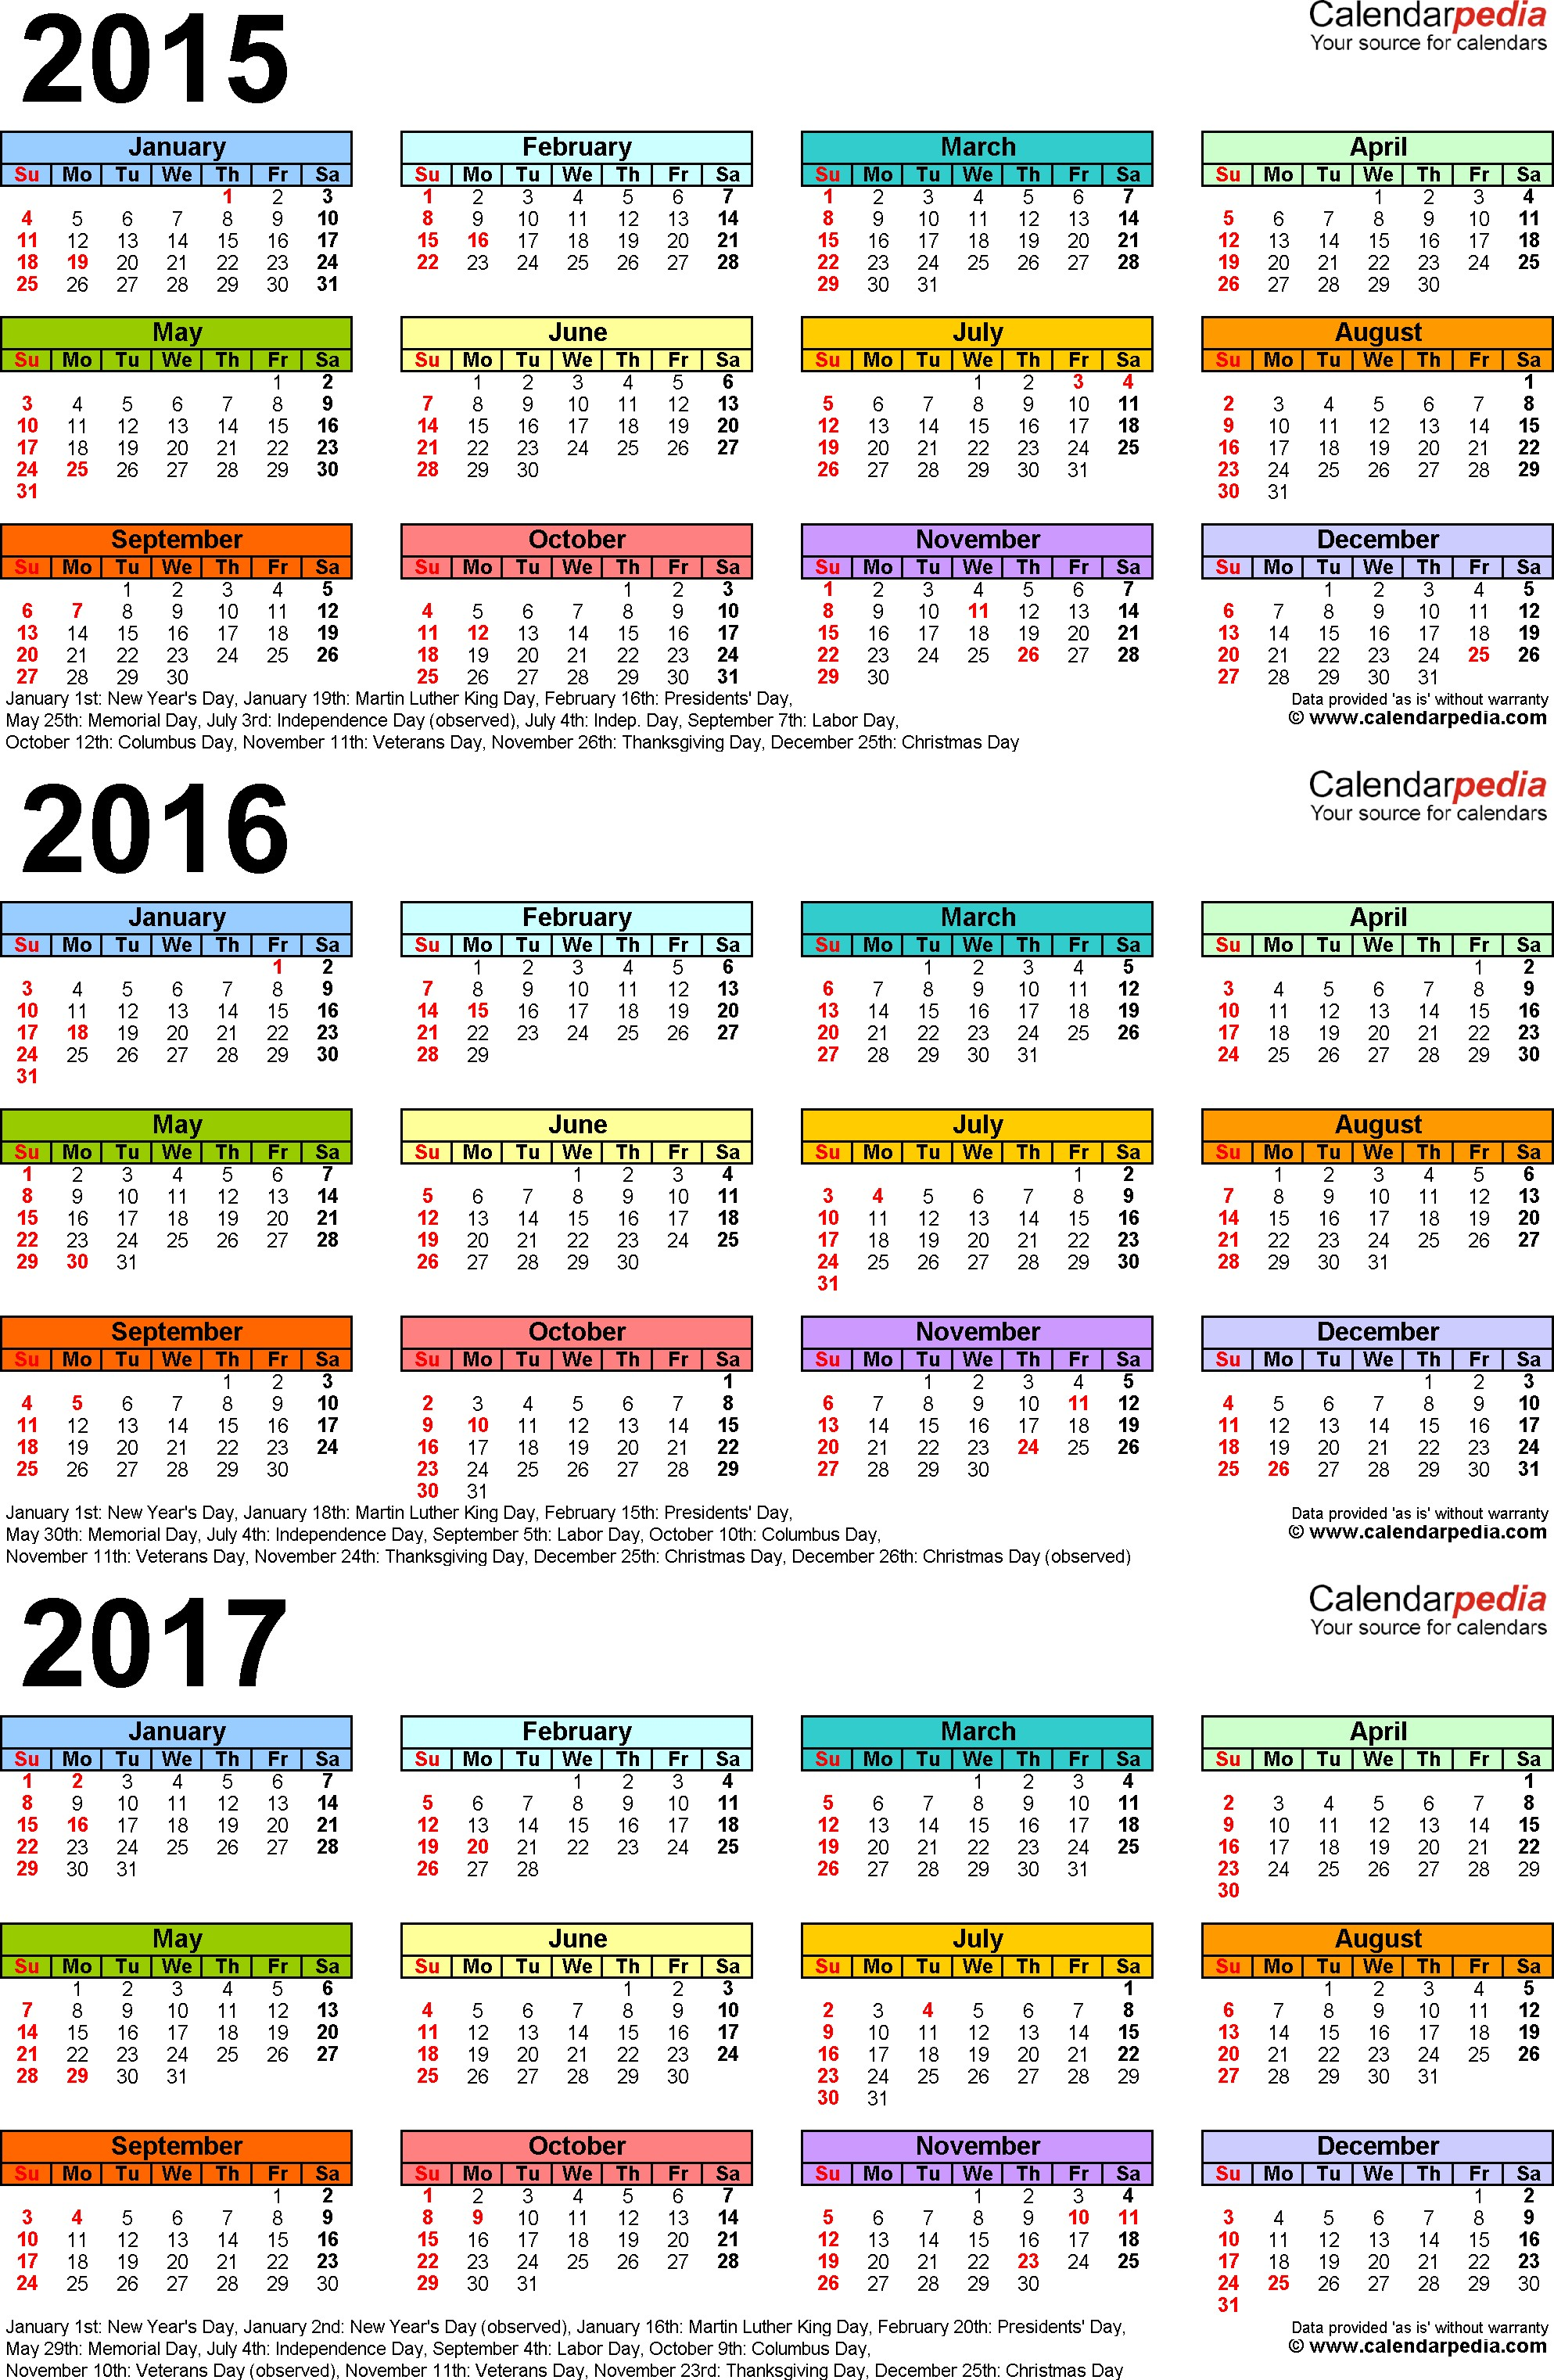 March Calendar Starting Monday Recientes 2015 2016 2017 Calendar 4 Three Year Printable Pdf Calendars Of March Calendar Starting Monday Recientes Next Year Calendar 2018